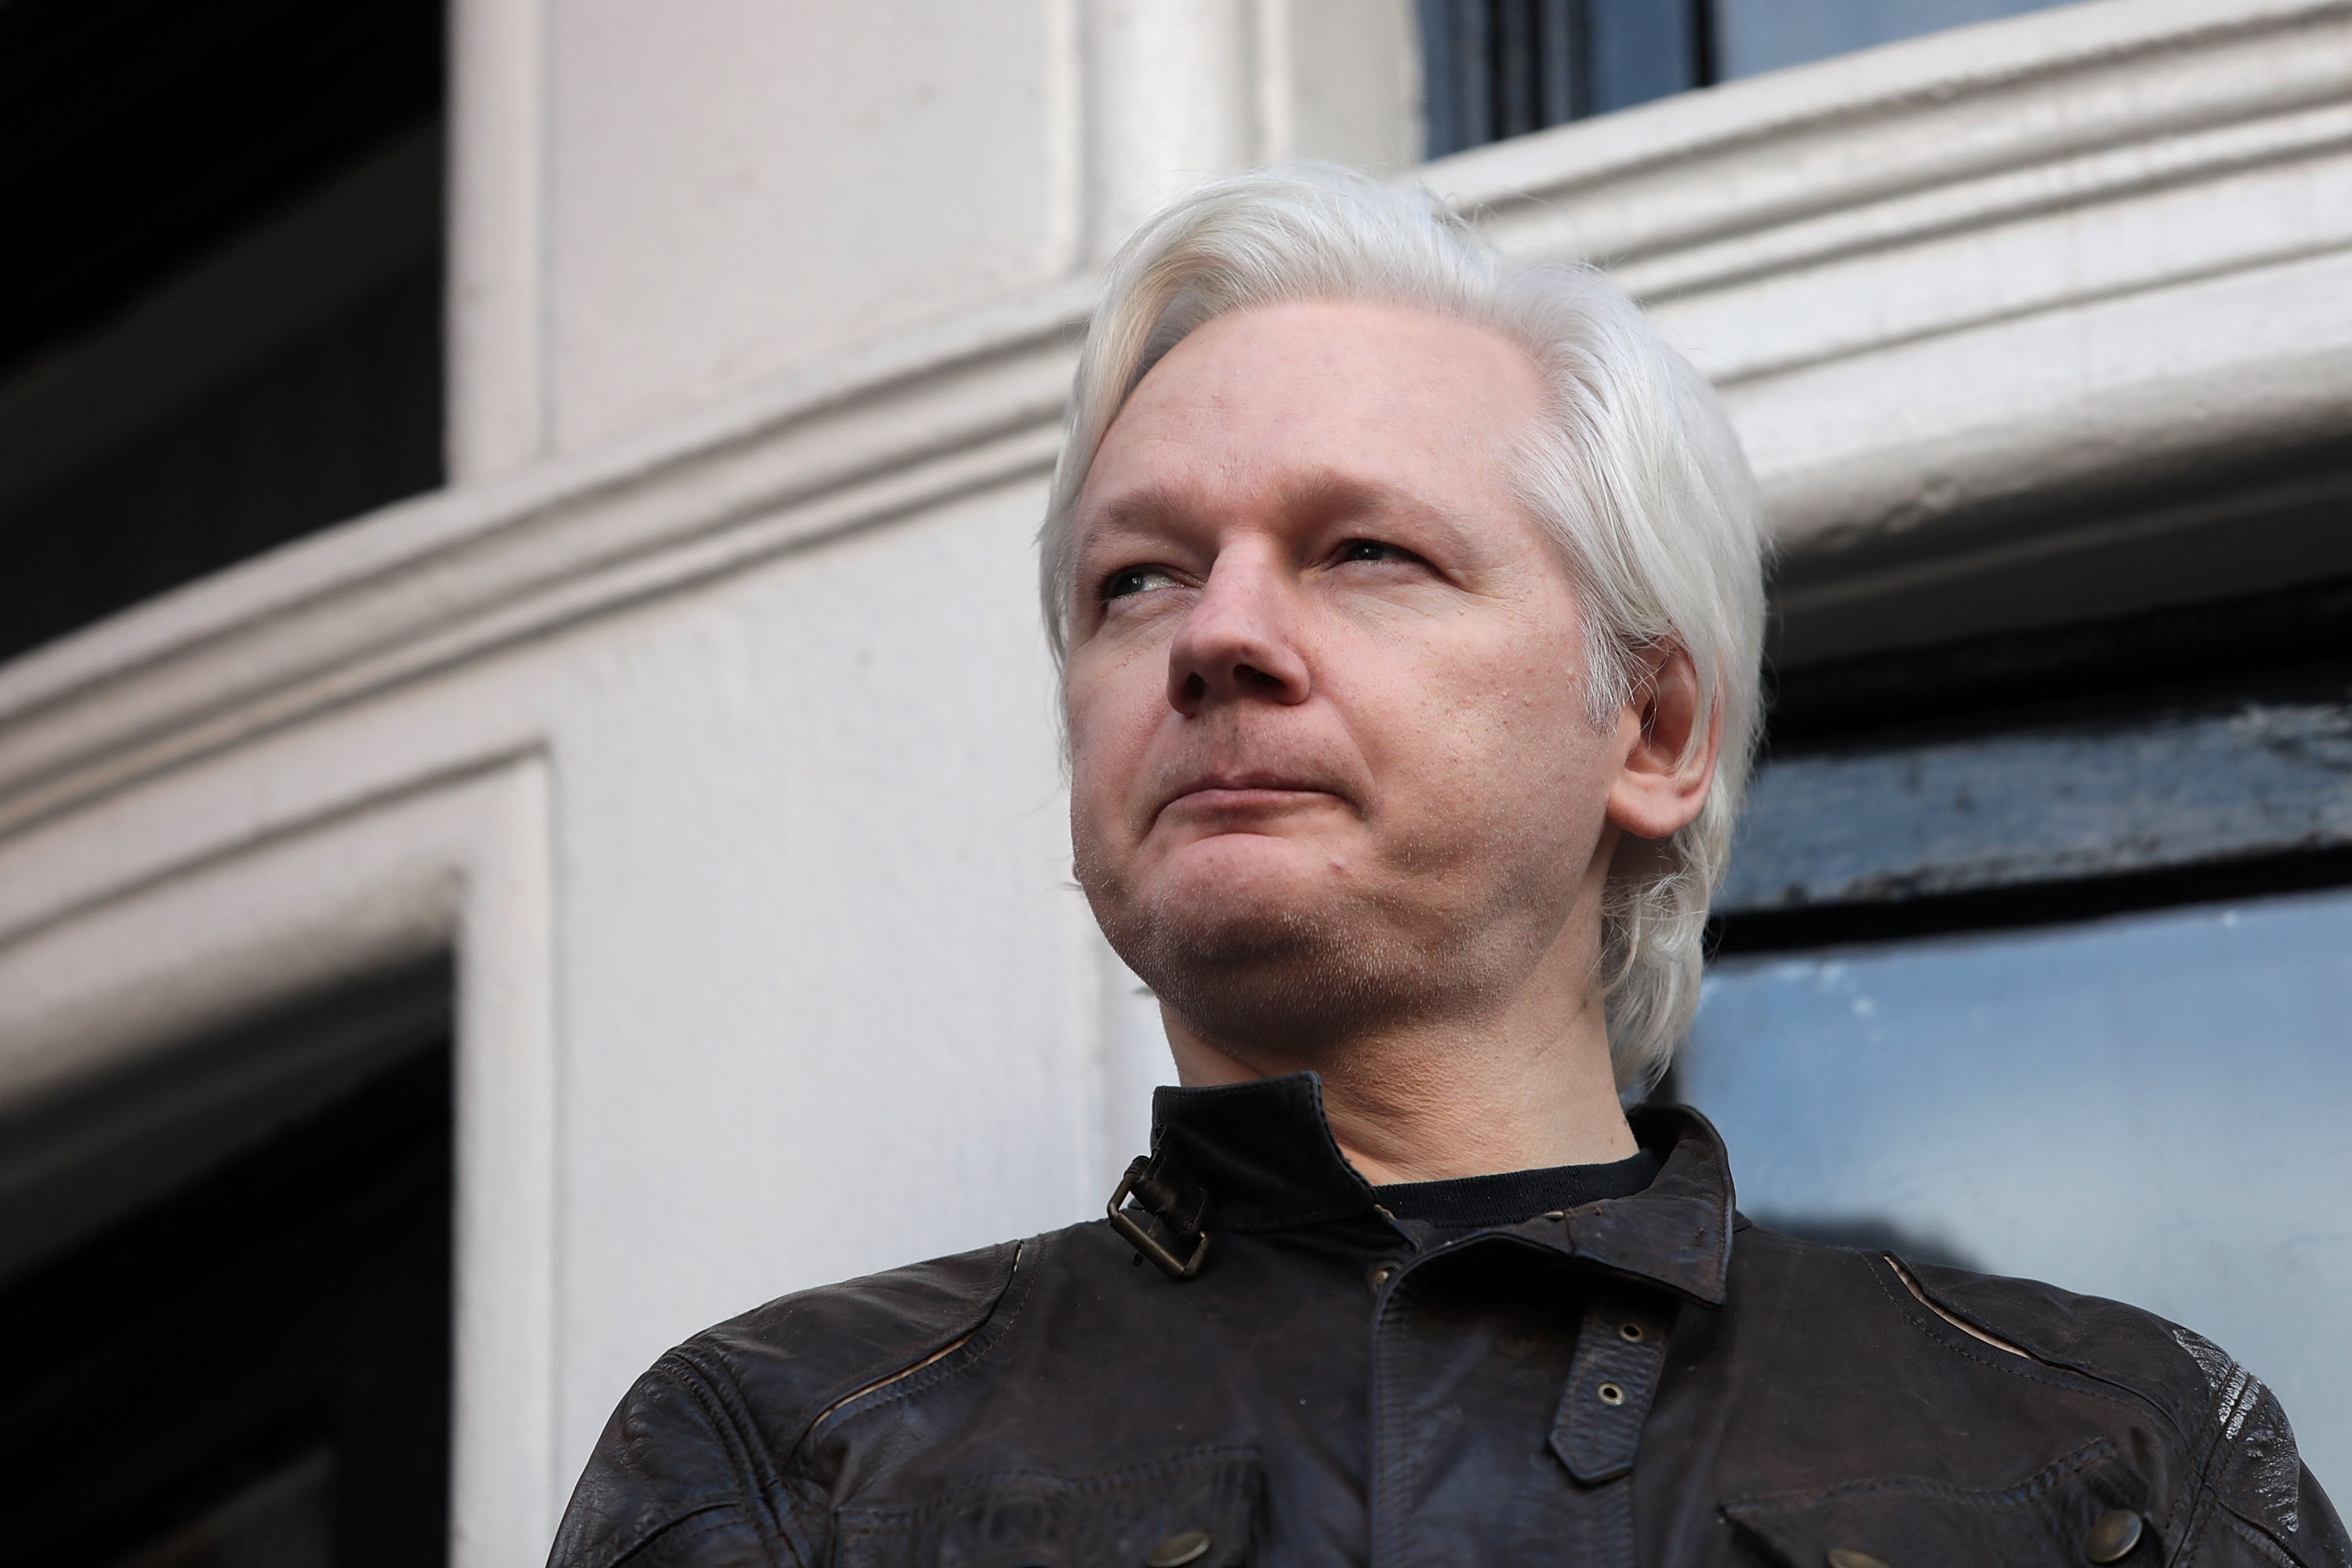 at Embassy Of Ecuador on May 19, 2017 in London, England.  Julian Assange, founder of the Wikileaks website that published US Government secrets, has been wanted in Sweden on charges of rape since 2012.  He sought asylum in the Ecuadorian Embassy in London and today police have said he will still face arrest if he leaves.